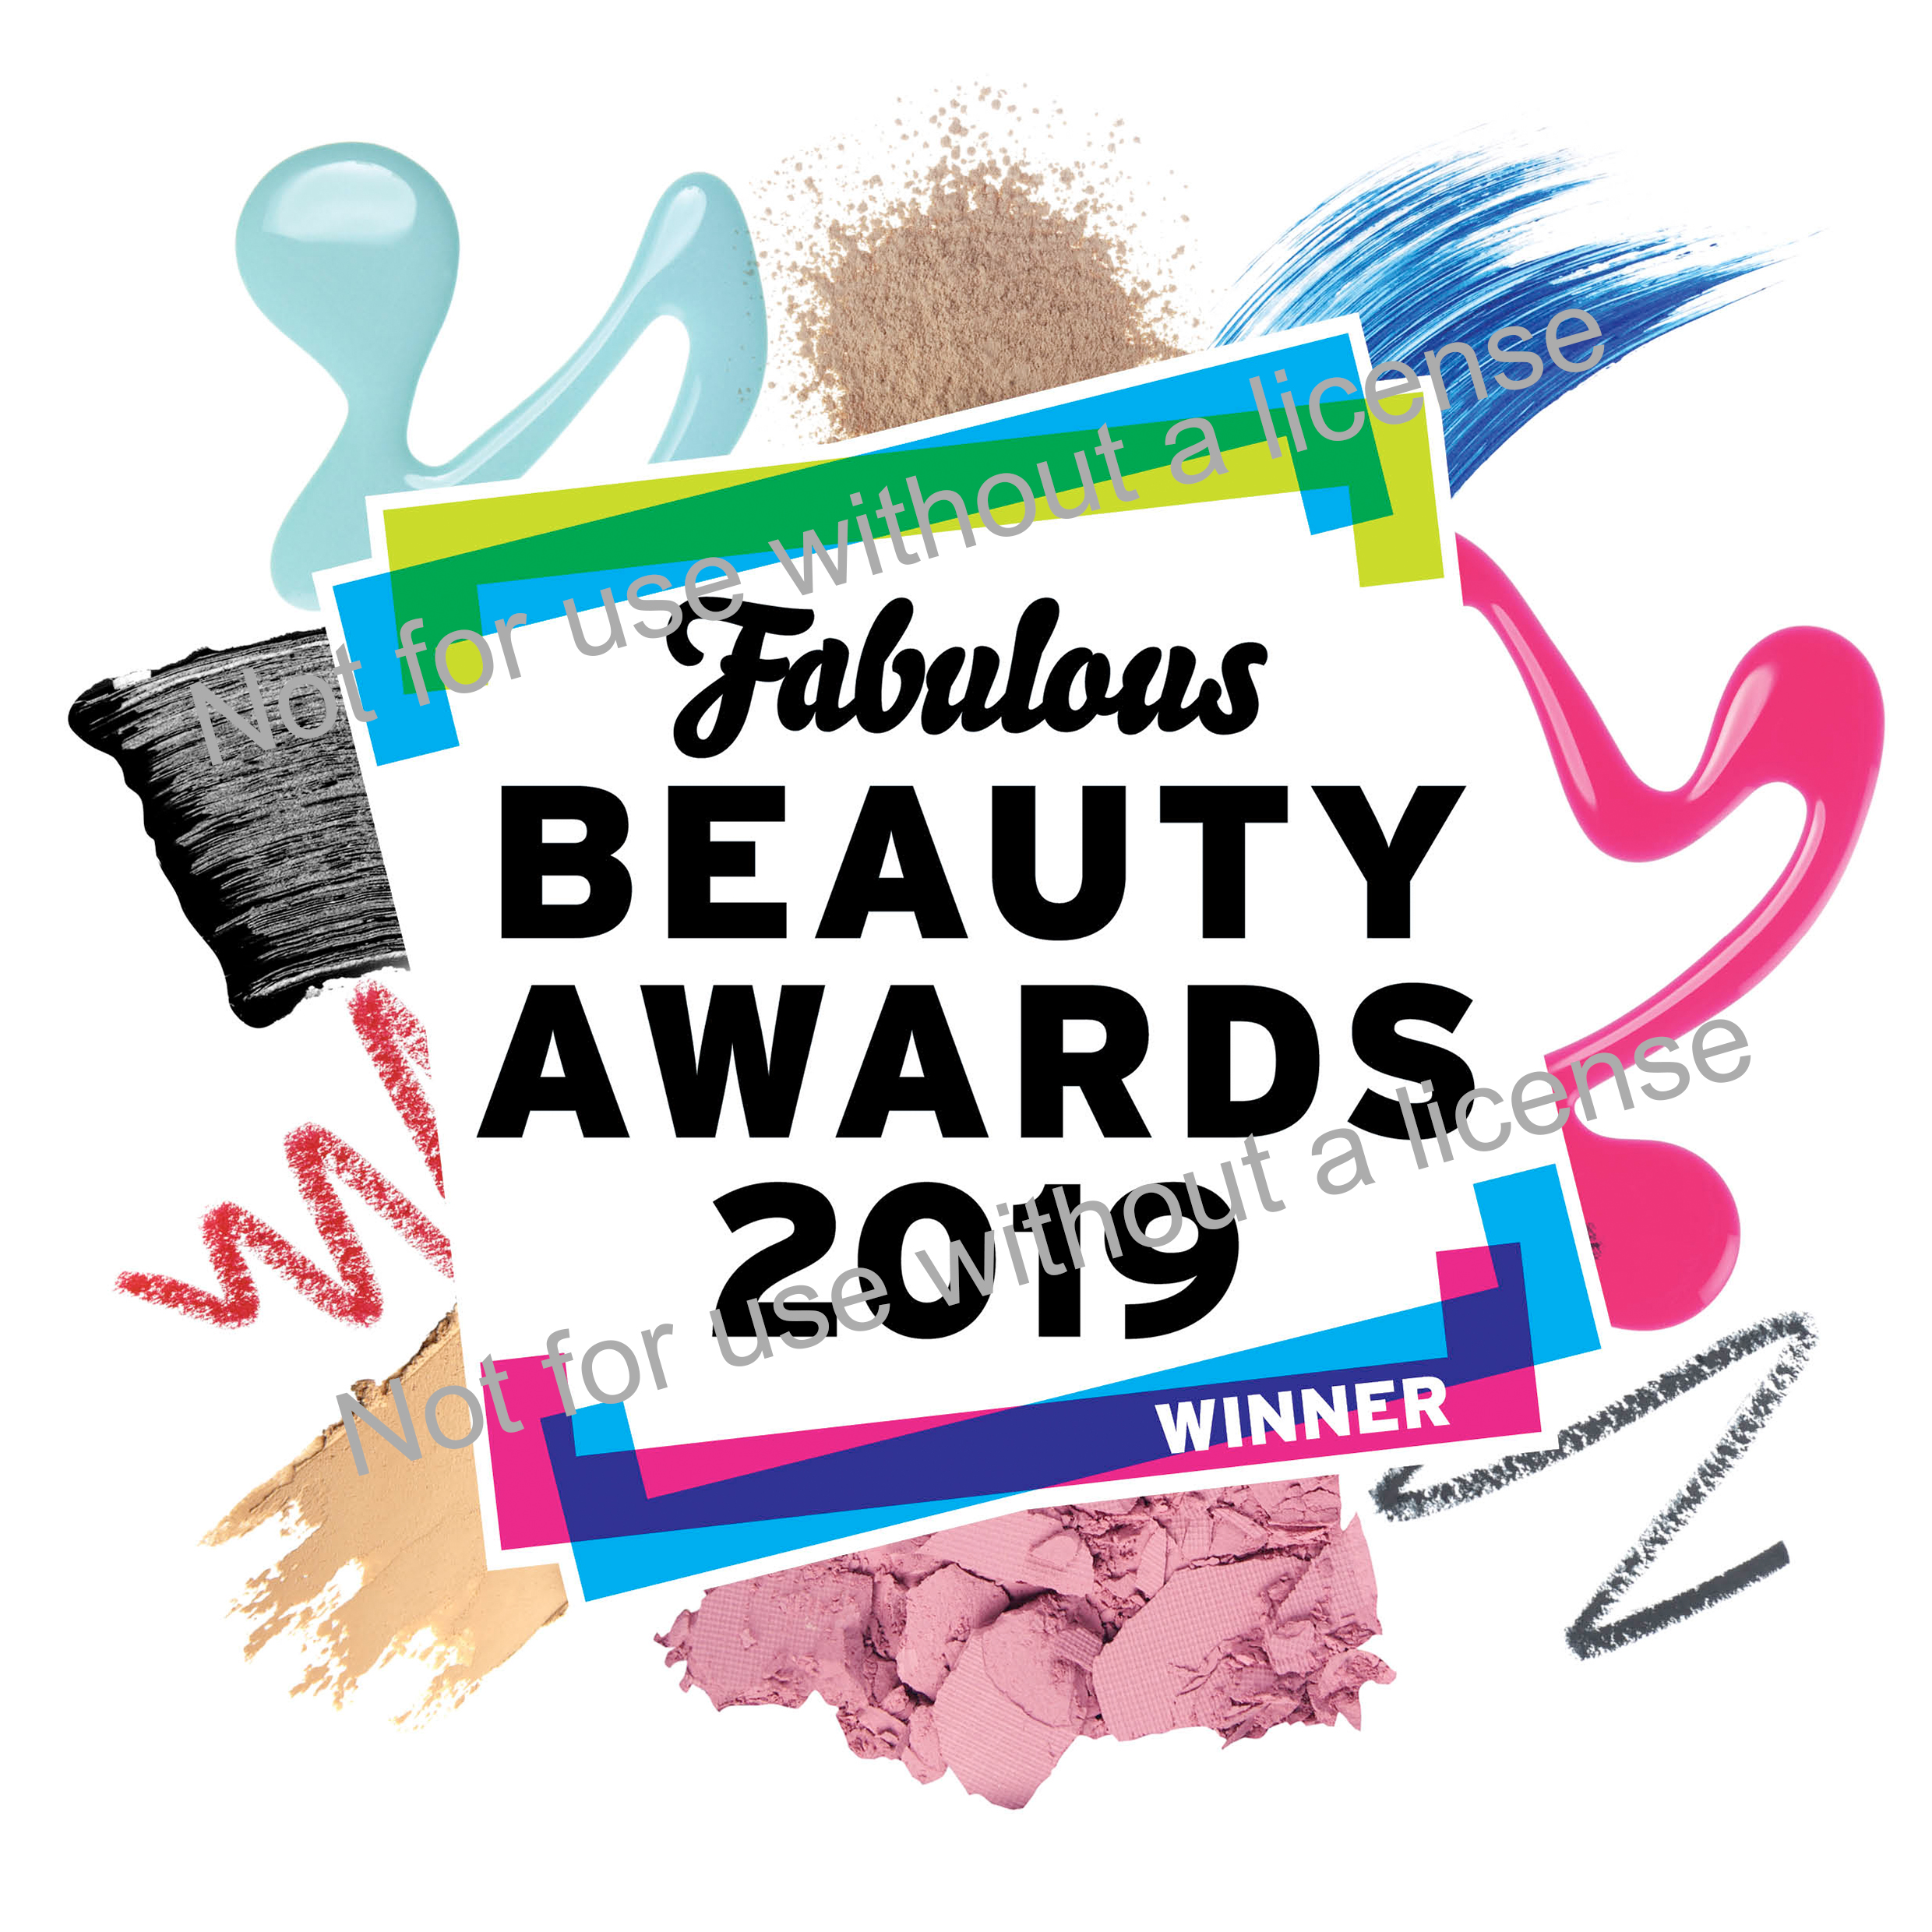 Fabulous Beauty Awards Winners 2019